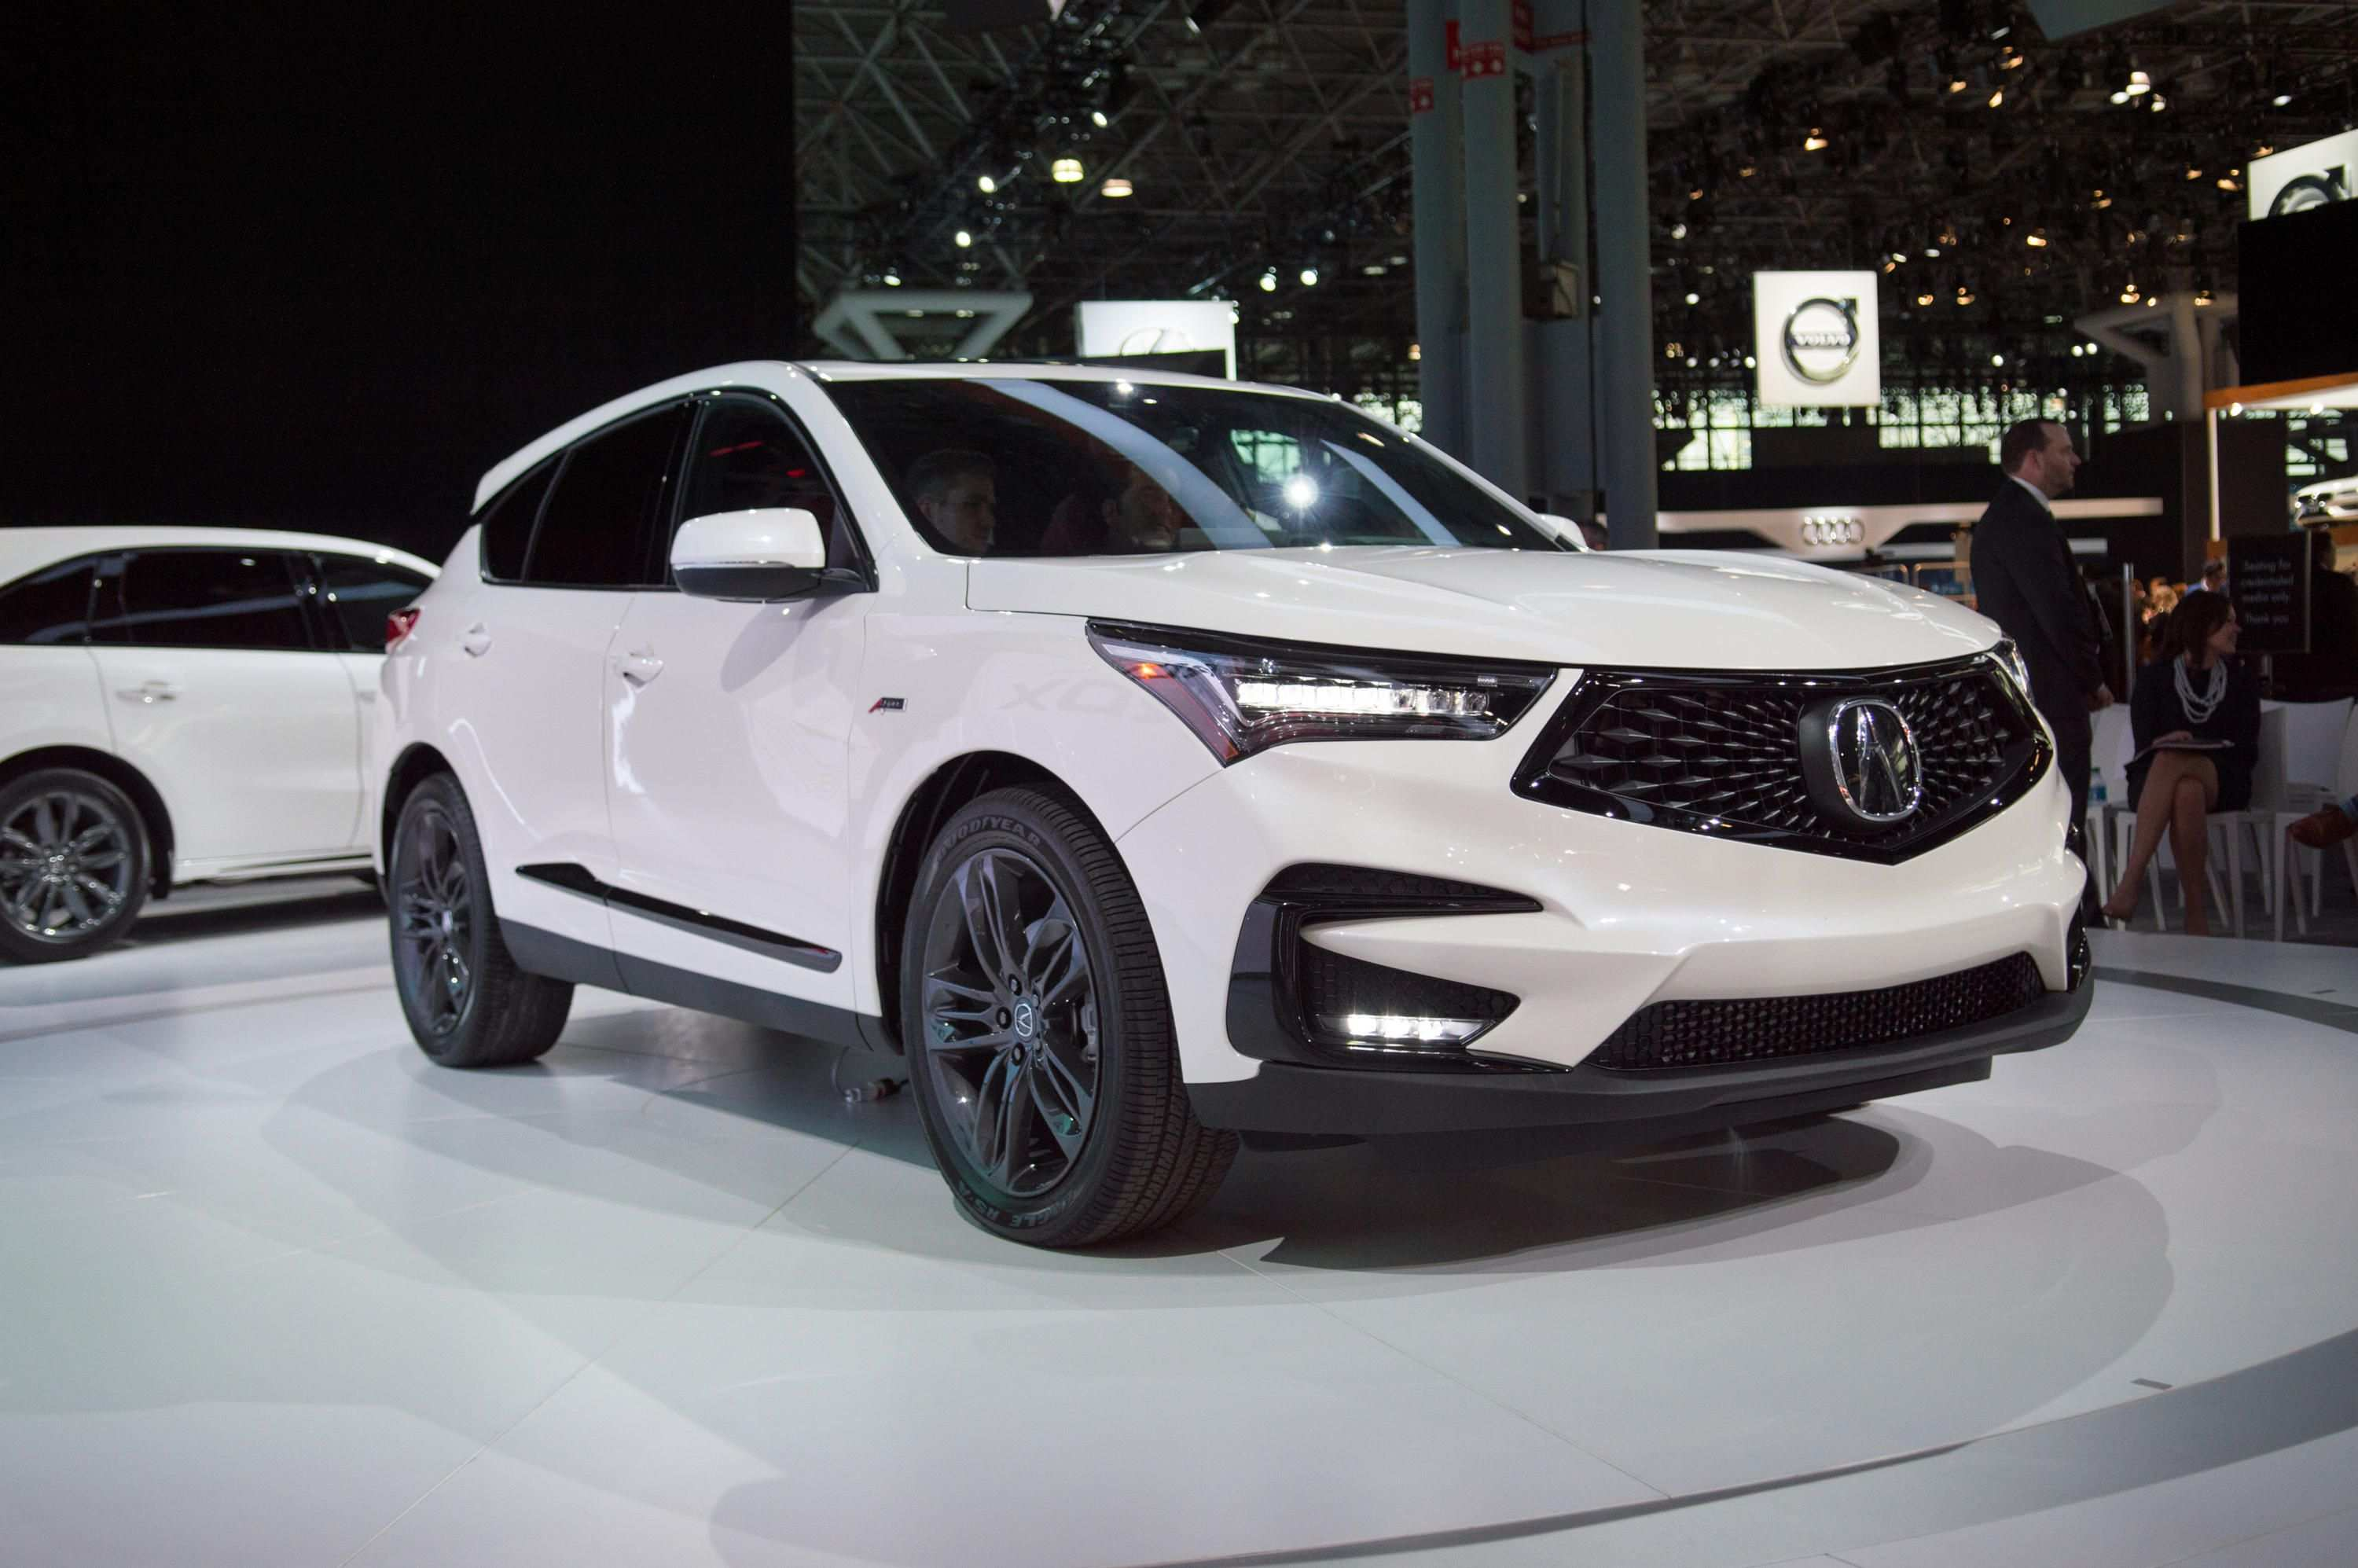 45 The Best 2019 Acura Rdx Engine Price And Release Date